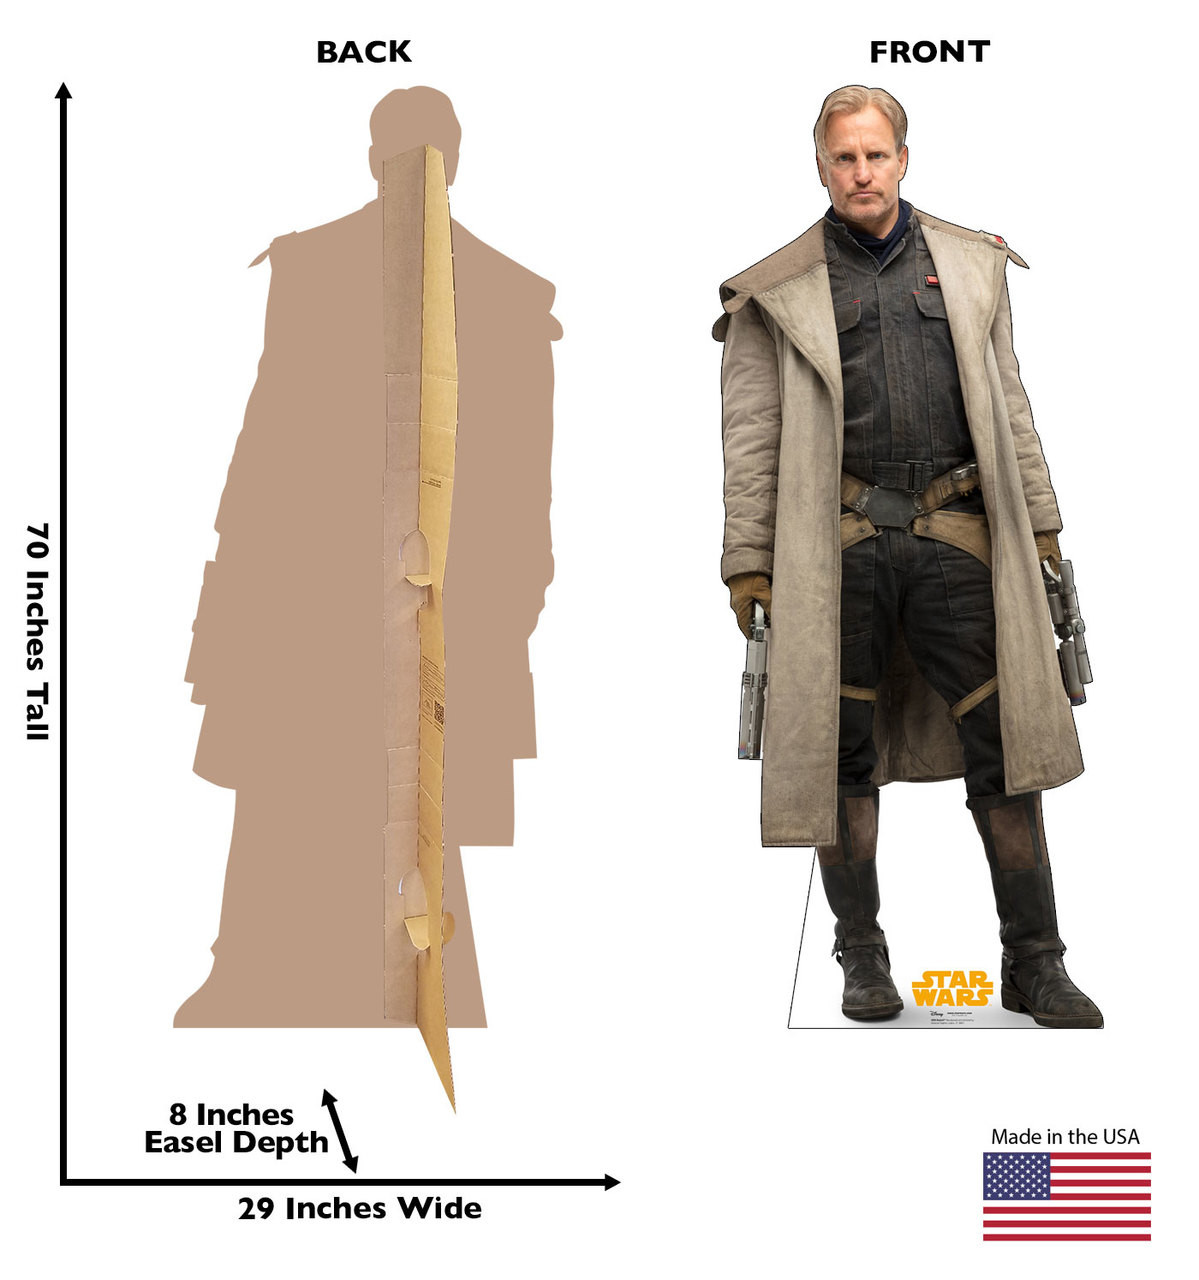 Beckett™ Life-size cardboard standee back and front with dimensions.